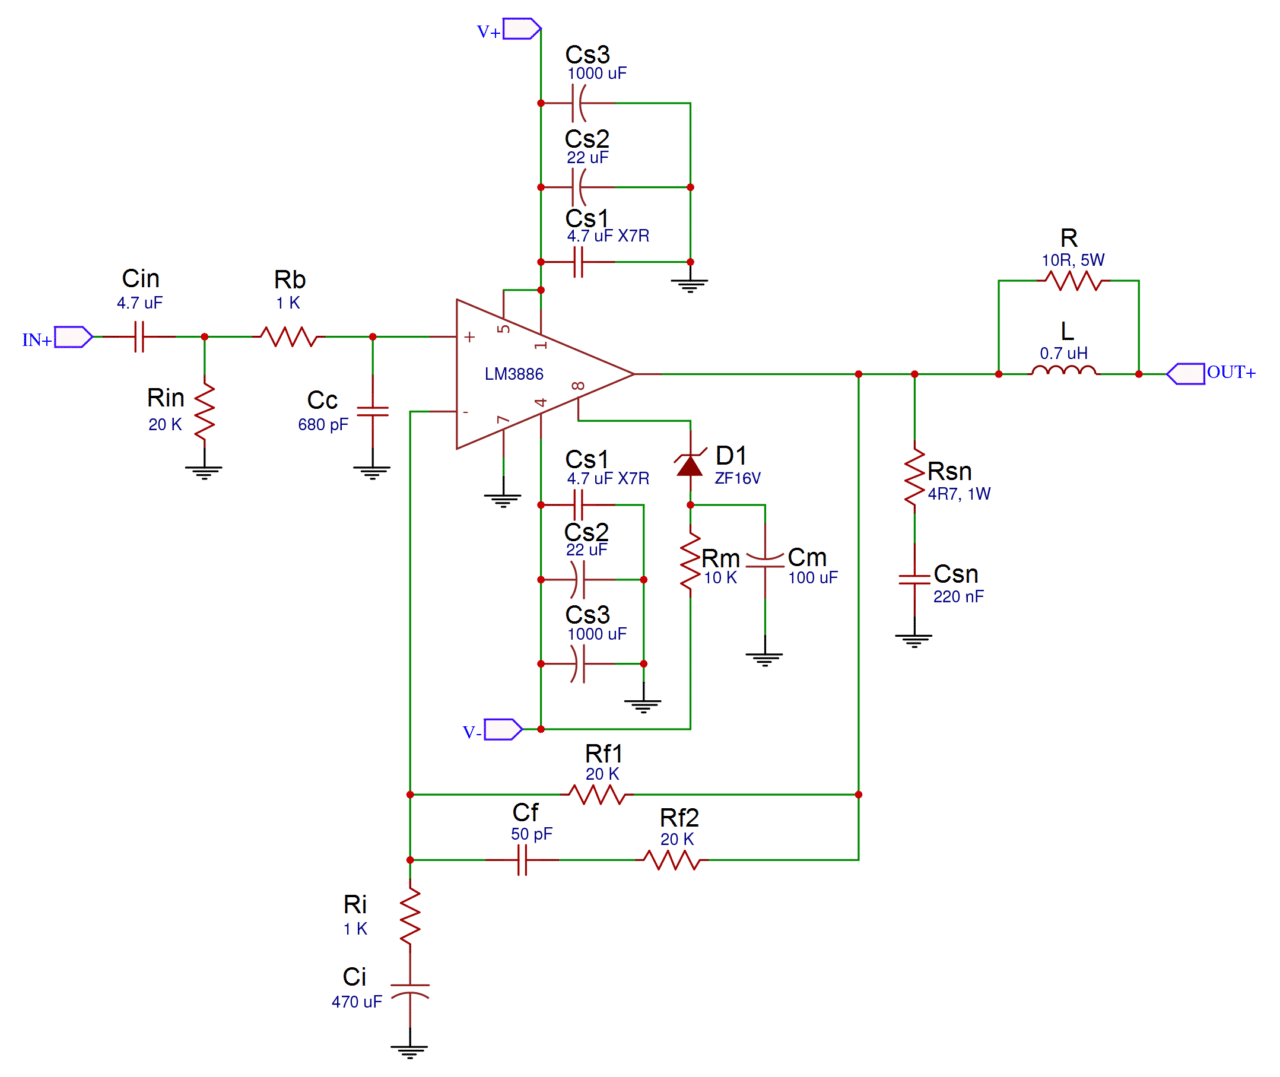 A Complete Guide To Design And Build Hi Fi Lm3886 Amplifier Ac Track Circuit Wiring Diagram Ill Be Using The Schematic Below Its Basically Same As One In Datasheet But With Optional Stability Components Included